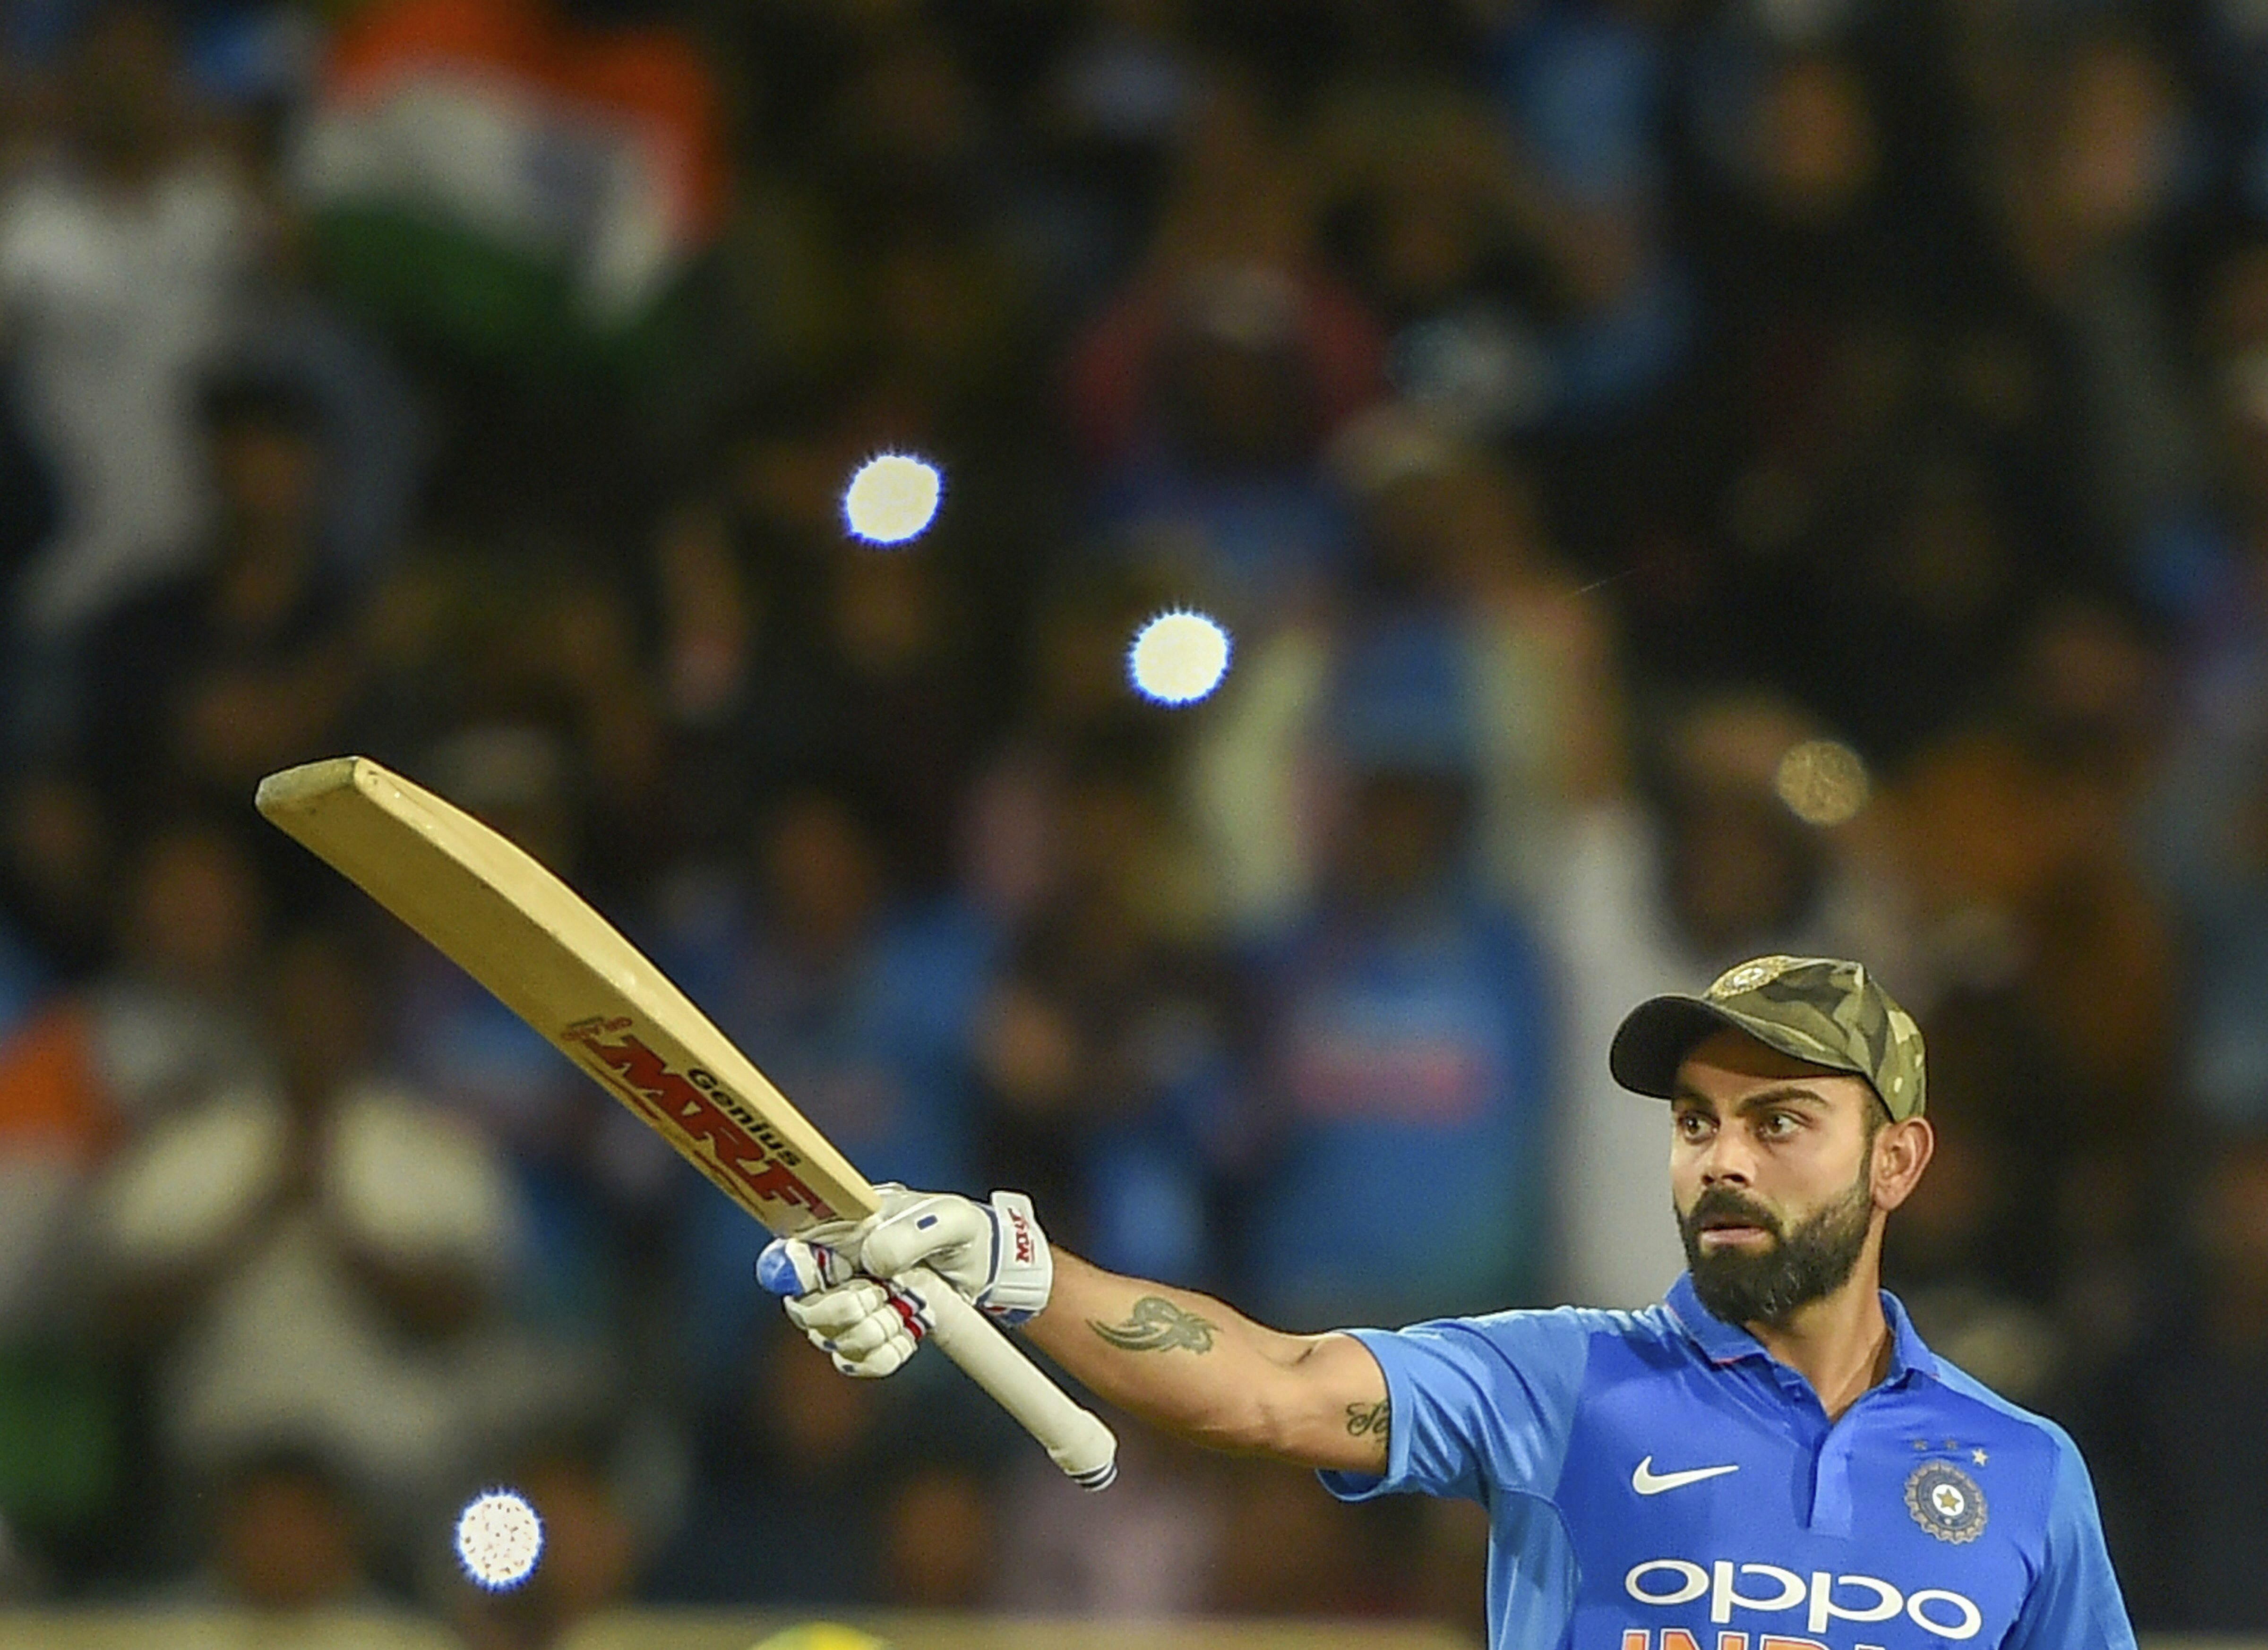 Indian skipper Virat Kohli acknowledges the crowd after hitting a century during the 3rd ODI cricket match against Australia, in Ranchi - AP